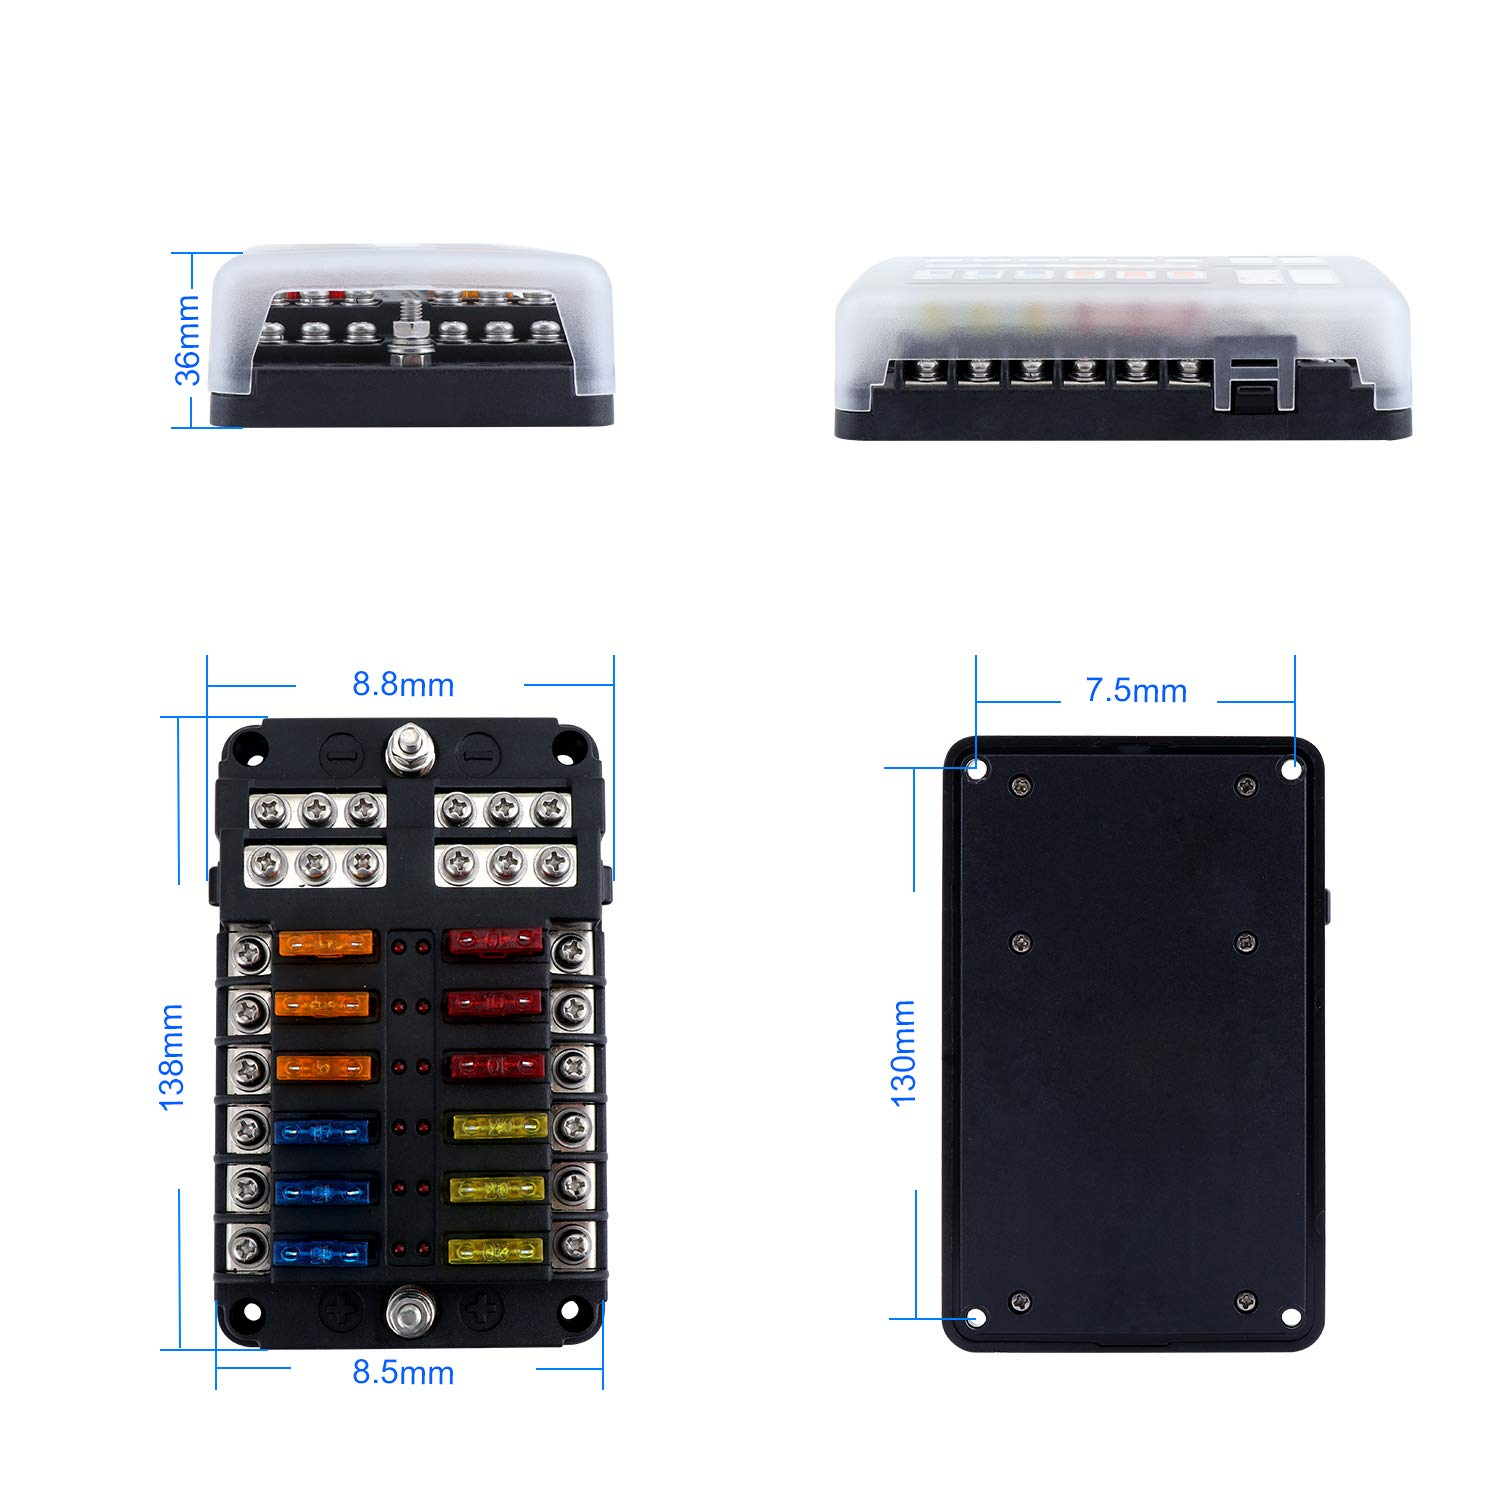 OCR Fuse Box with Negative Bus 12 Way Blade Fuses Holder Block with LED Indicator and Damp-Proof Cover for Boat Van Car Truck Marine